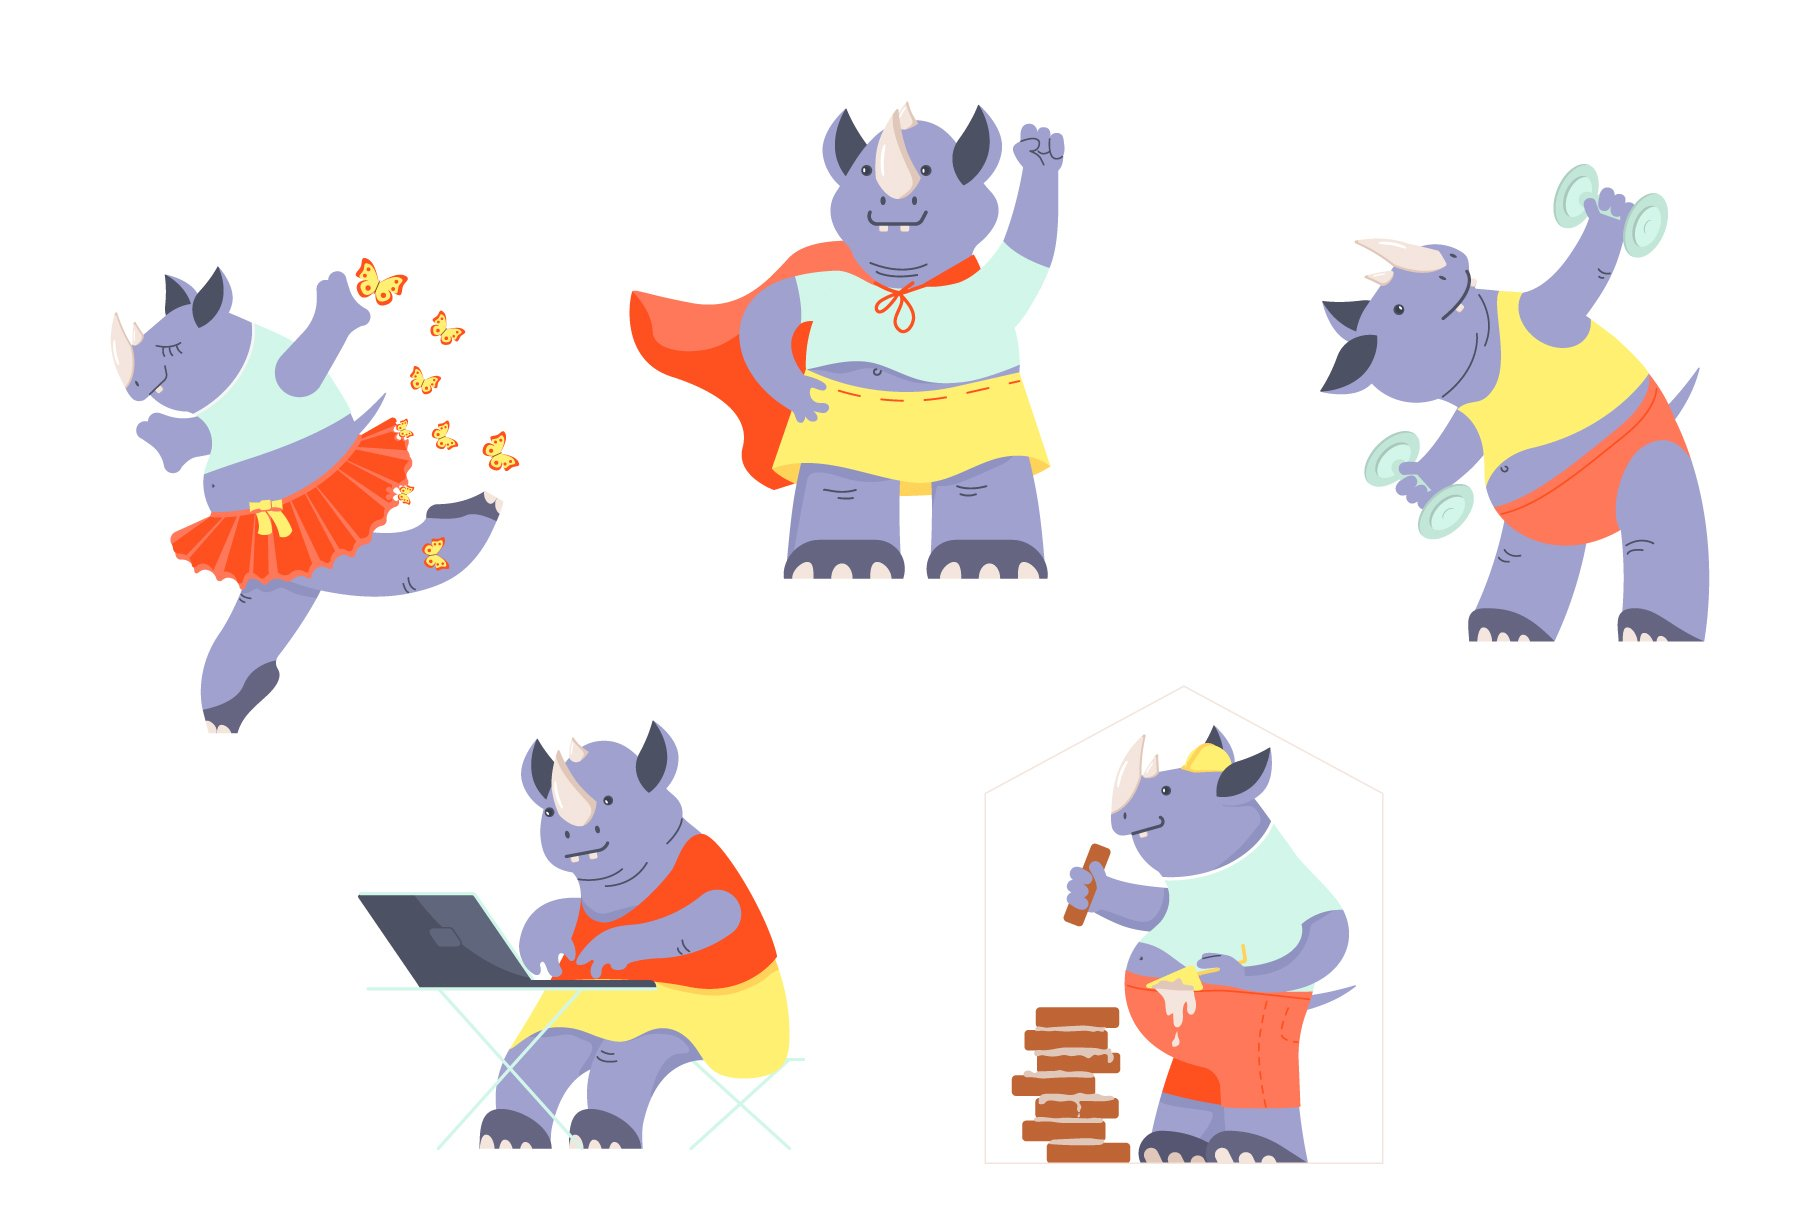 Funny Rhino characters example image 2